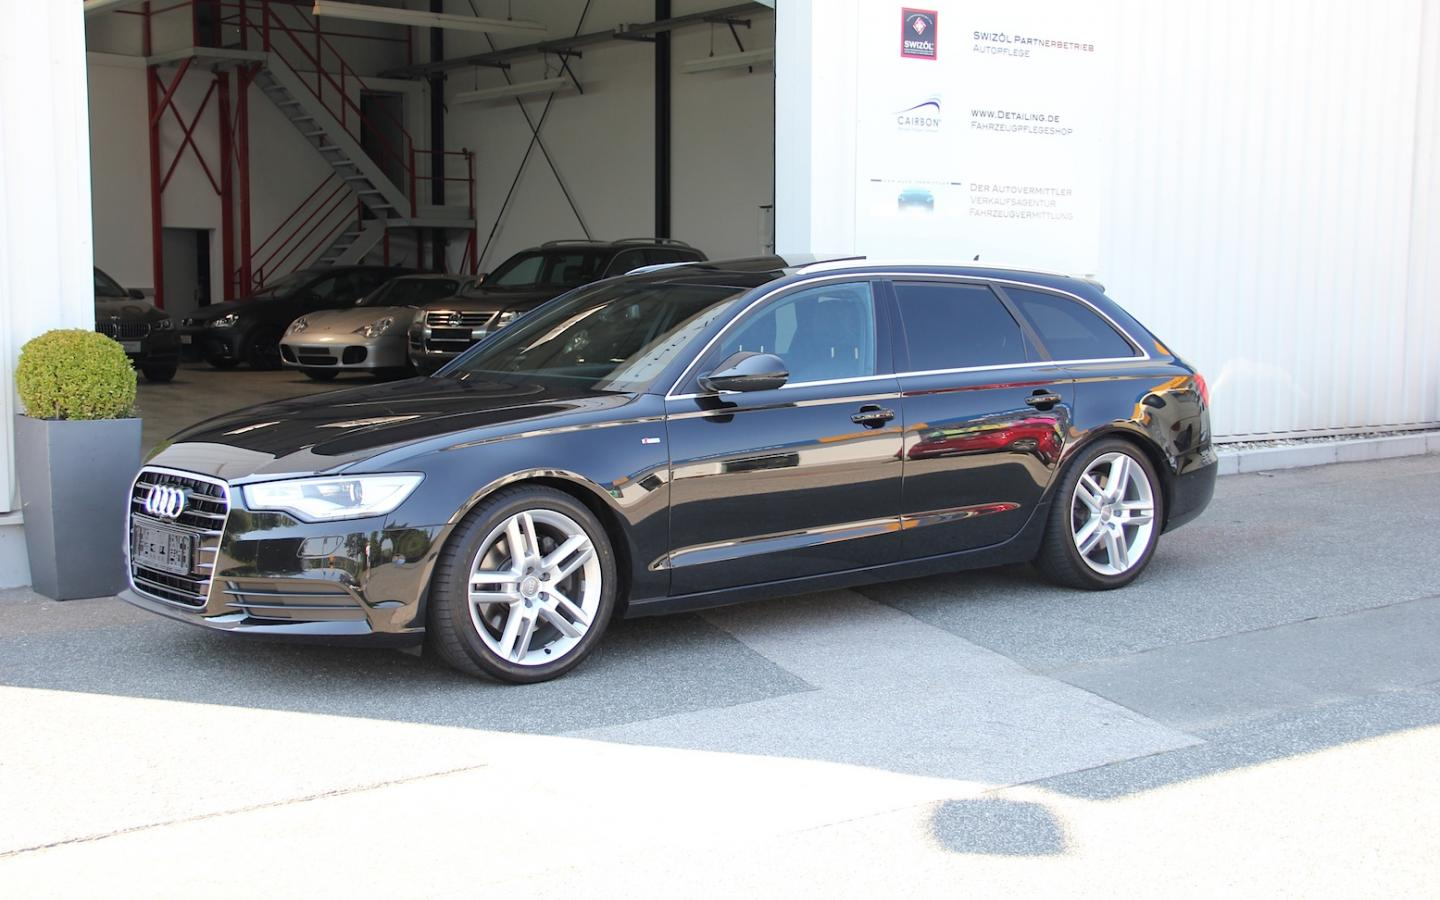 audi a6 avant 3 0 tdi quattro 4g s line panoramadach. Black Bedroom Furniture Sets. Home Design Ideas